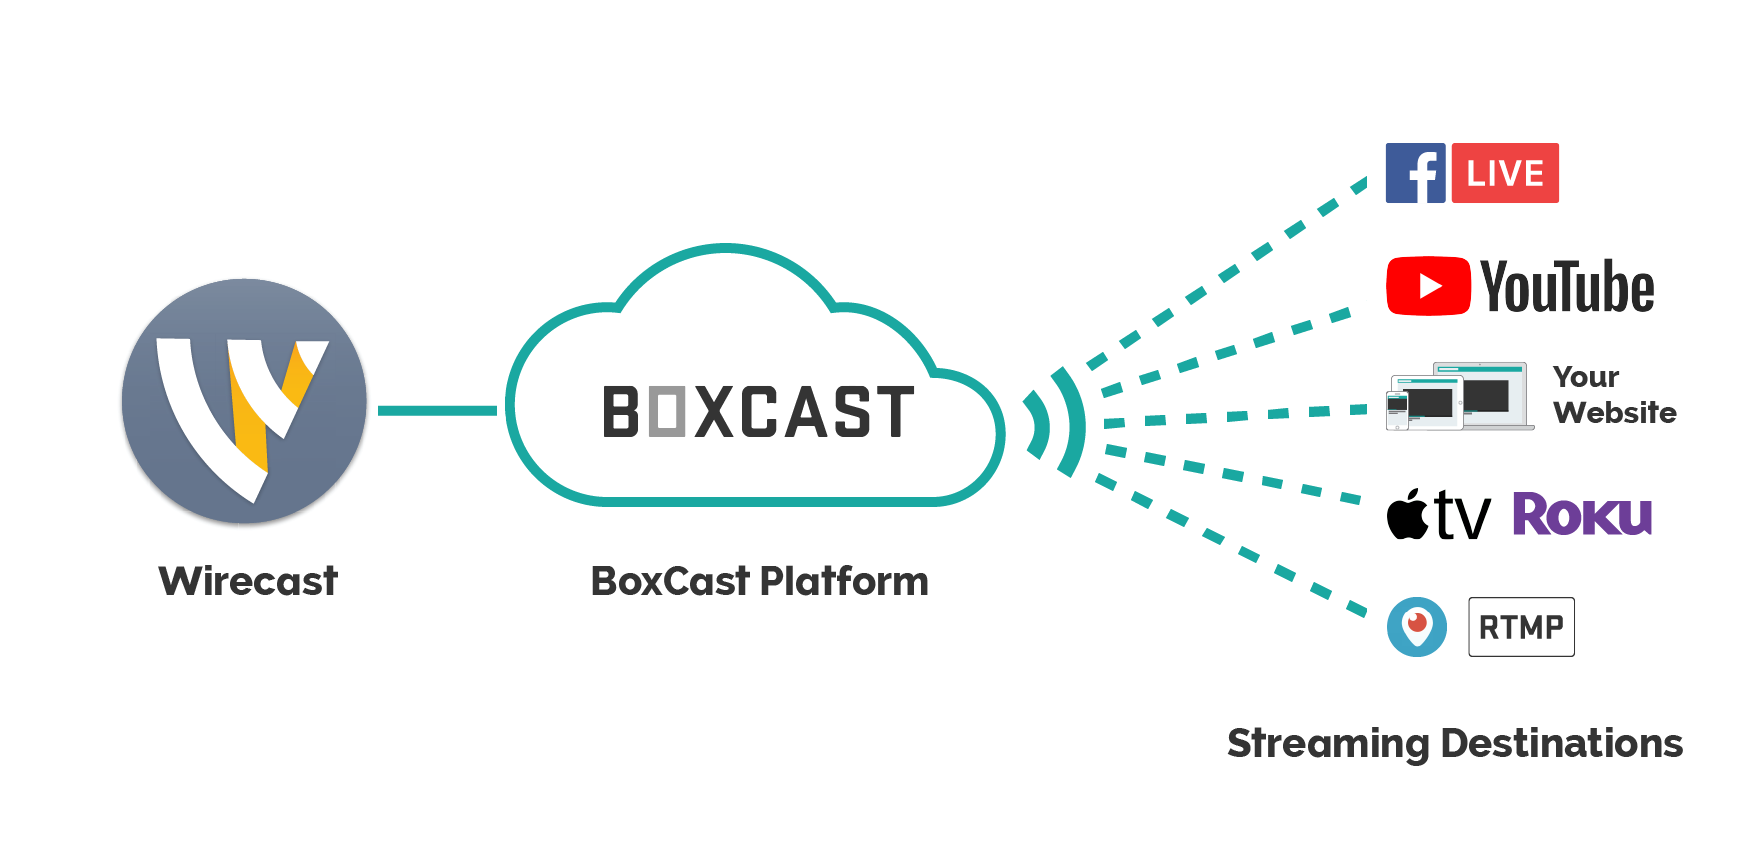 BoxCast integrates with Wirecast for simple, high-quality live webcasts